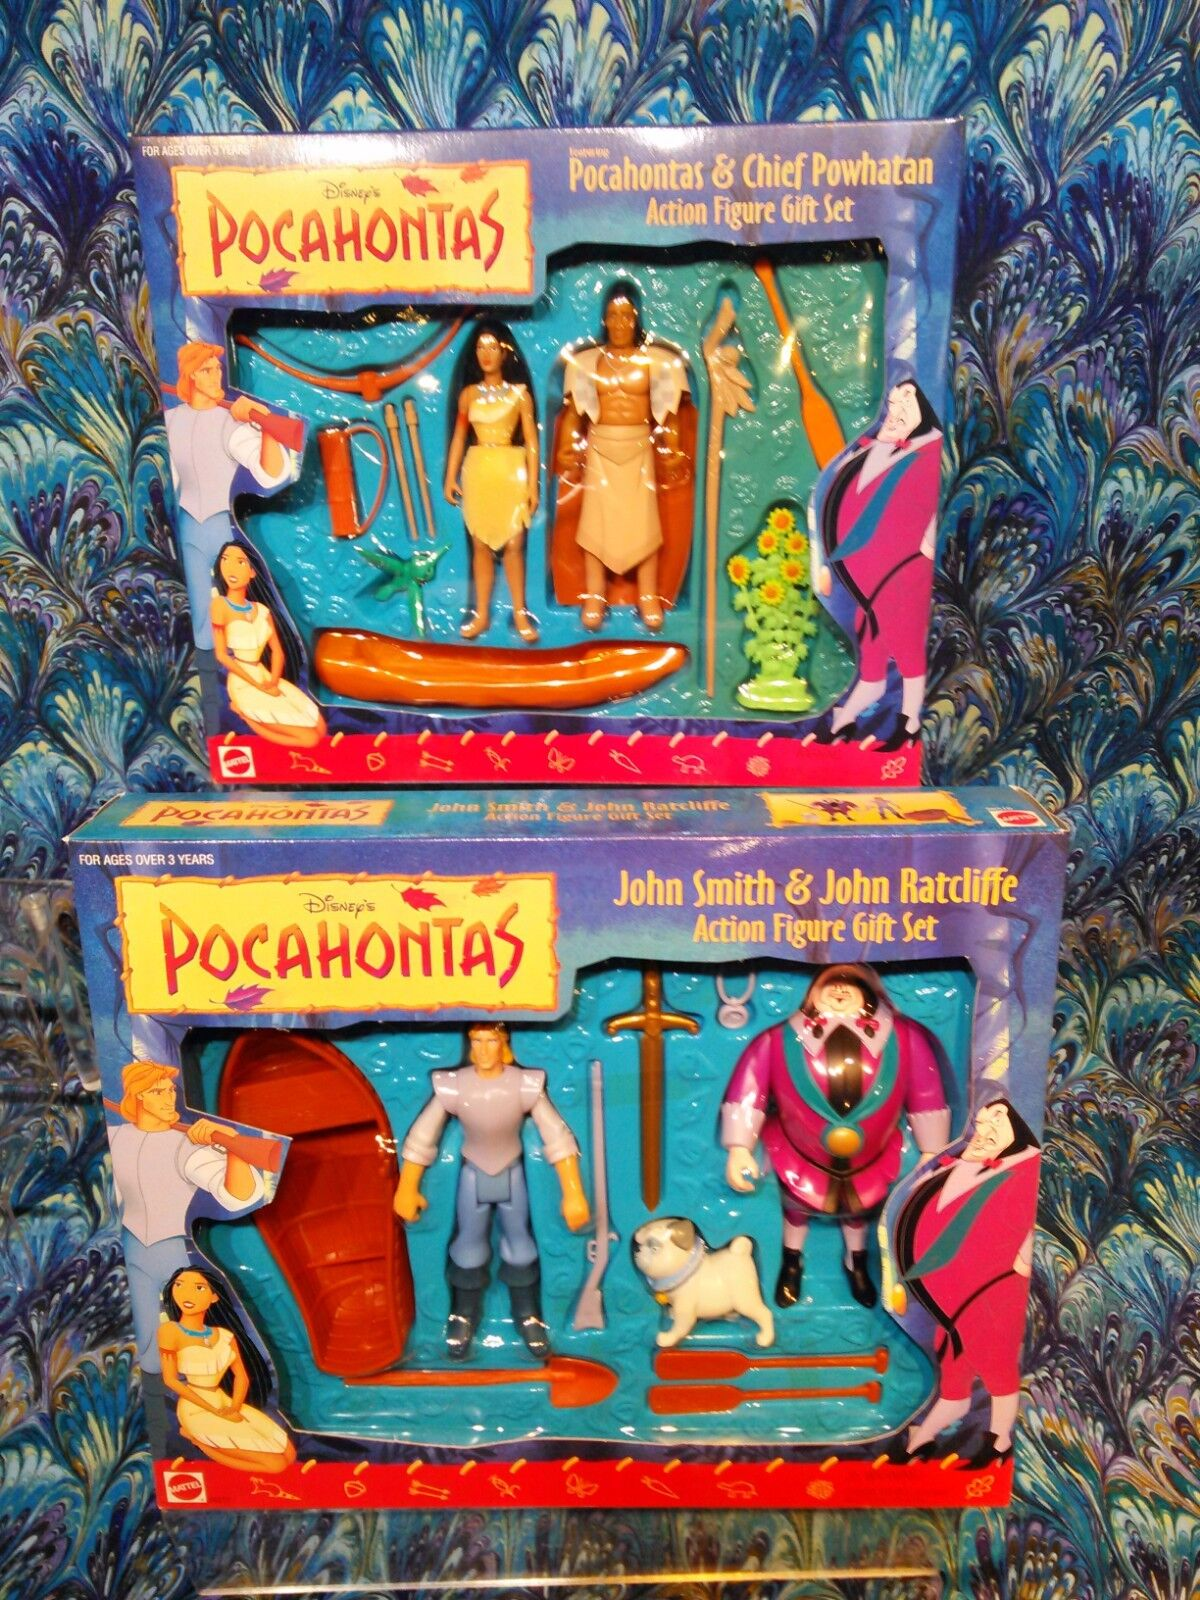 Pocahontas Action Figure Gift Set Lot 2 NEW IN BOX SEALED NI